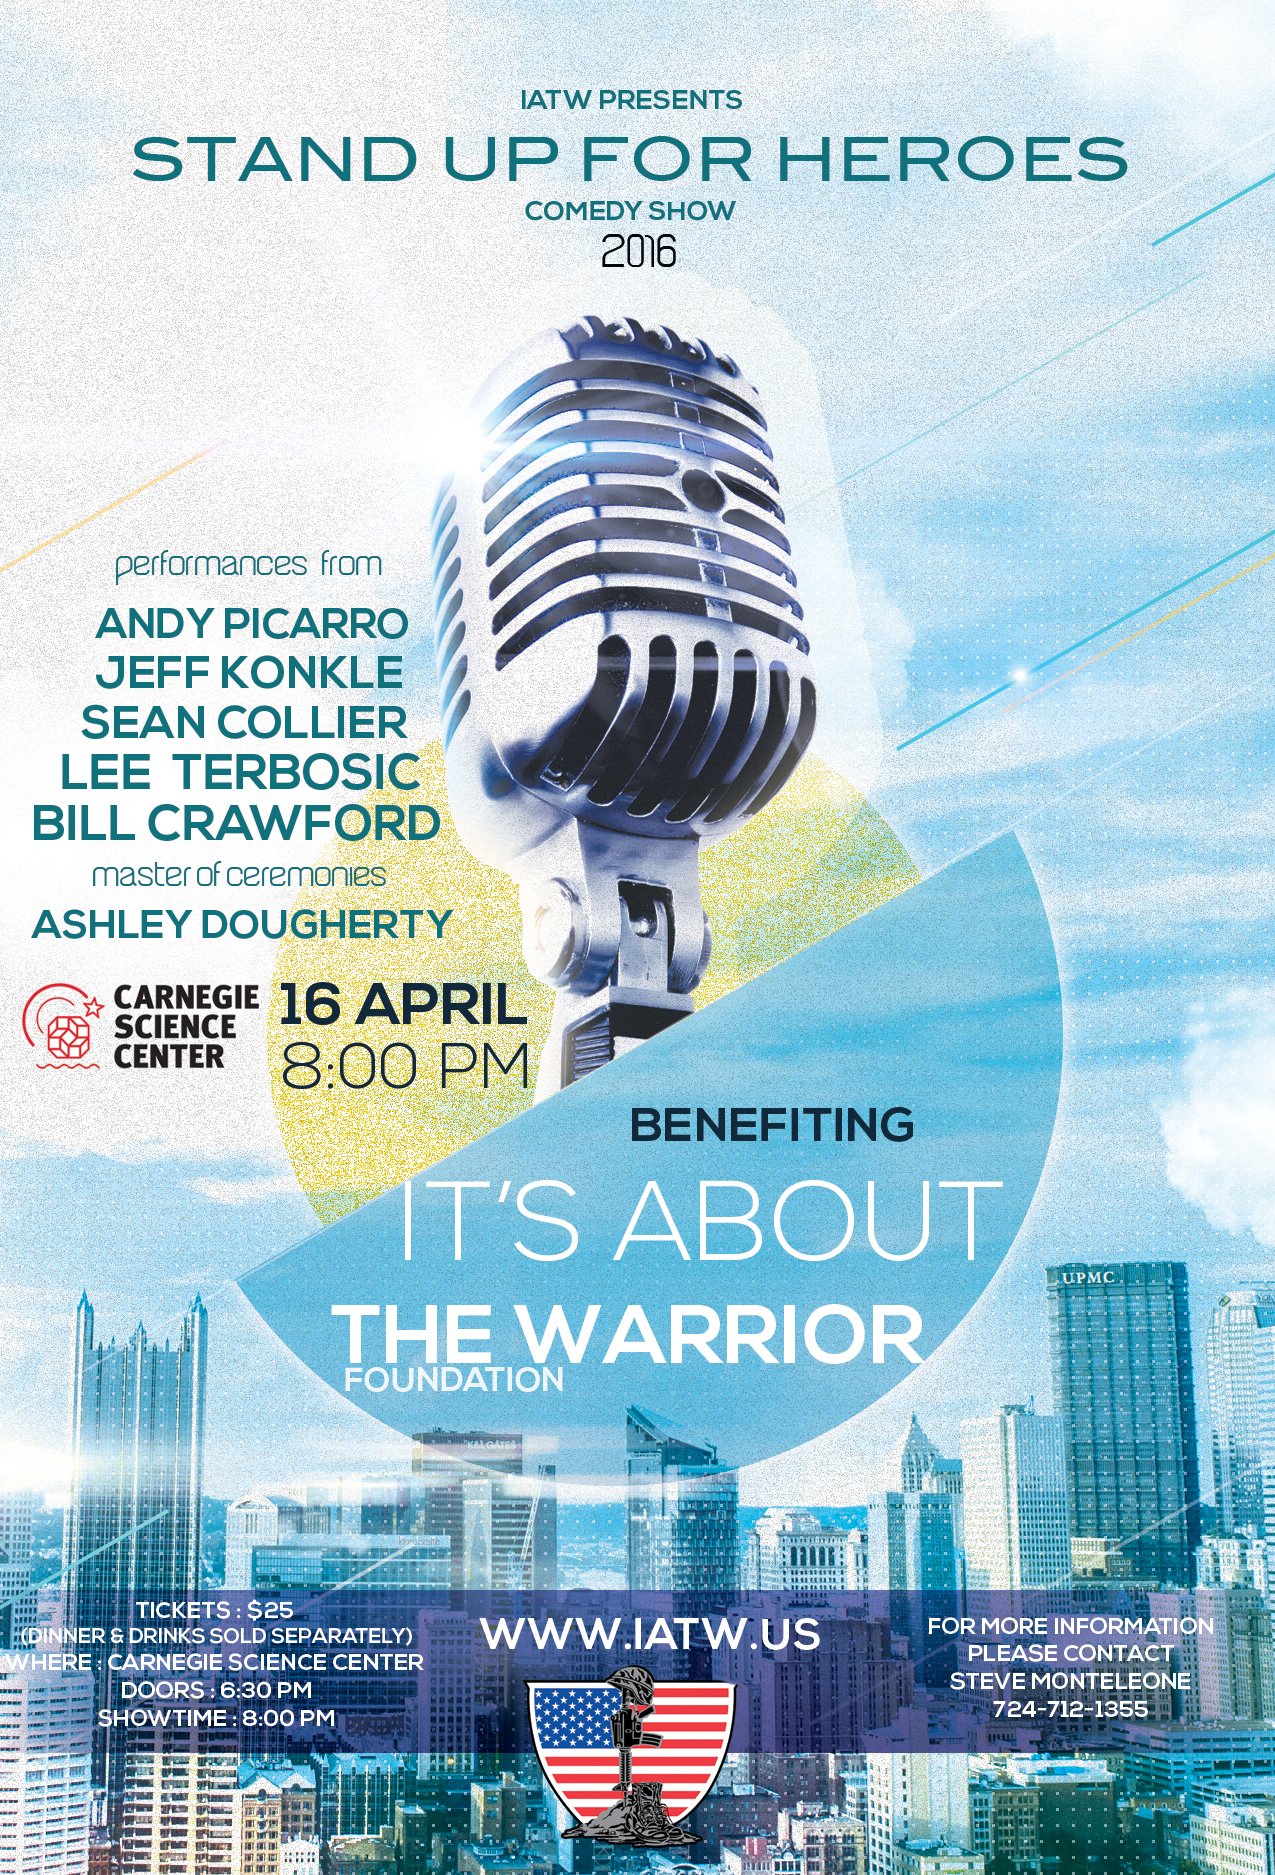 Lee Terbosic, Bill Crawford, WDVE, Pittsburgh, Its about the warrior, comedy